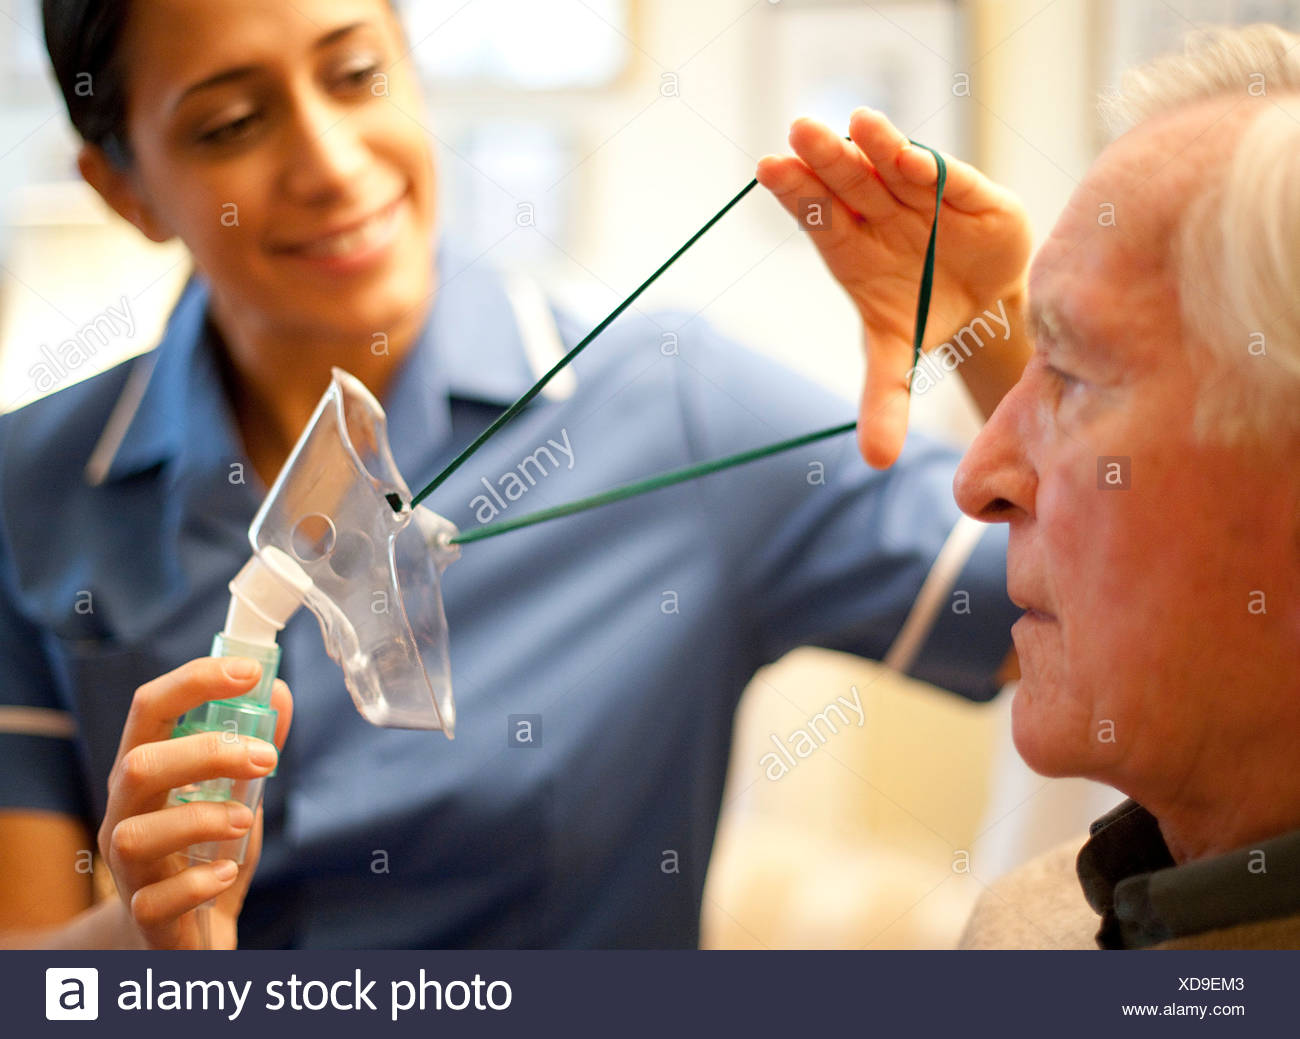 Oxygen therapy - Stock Image